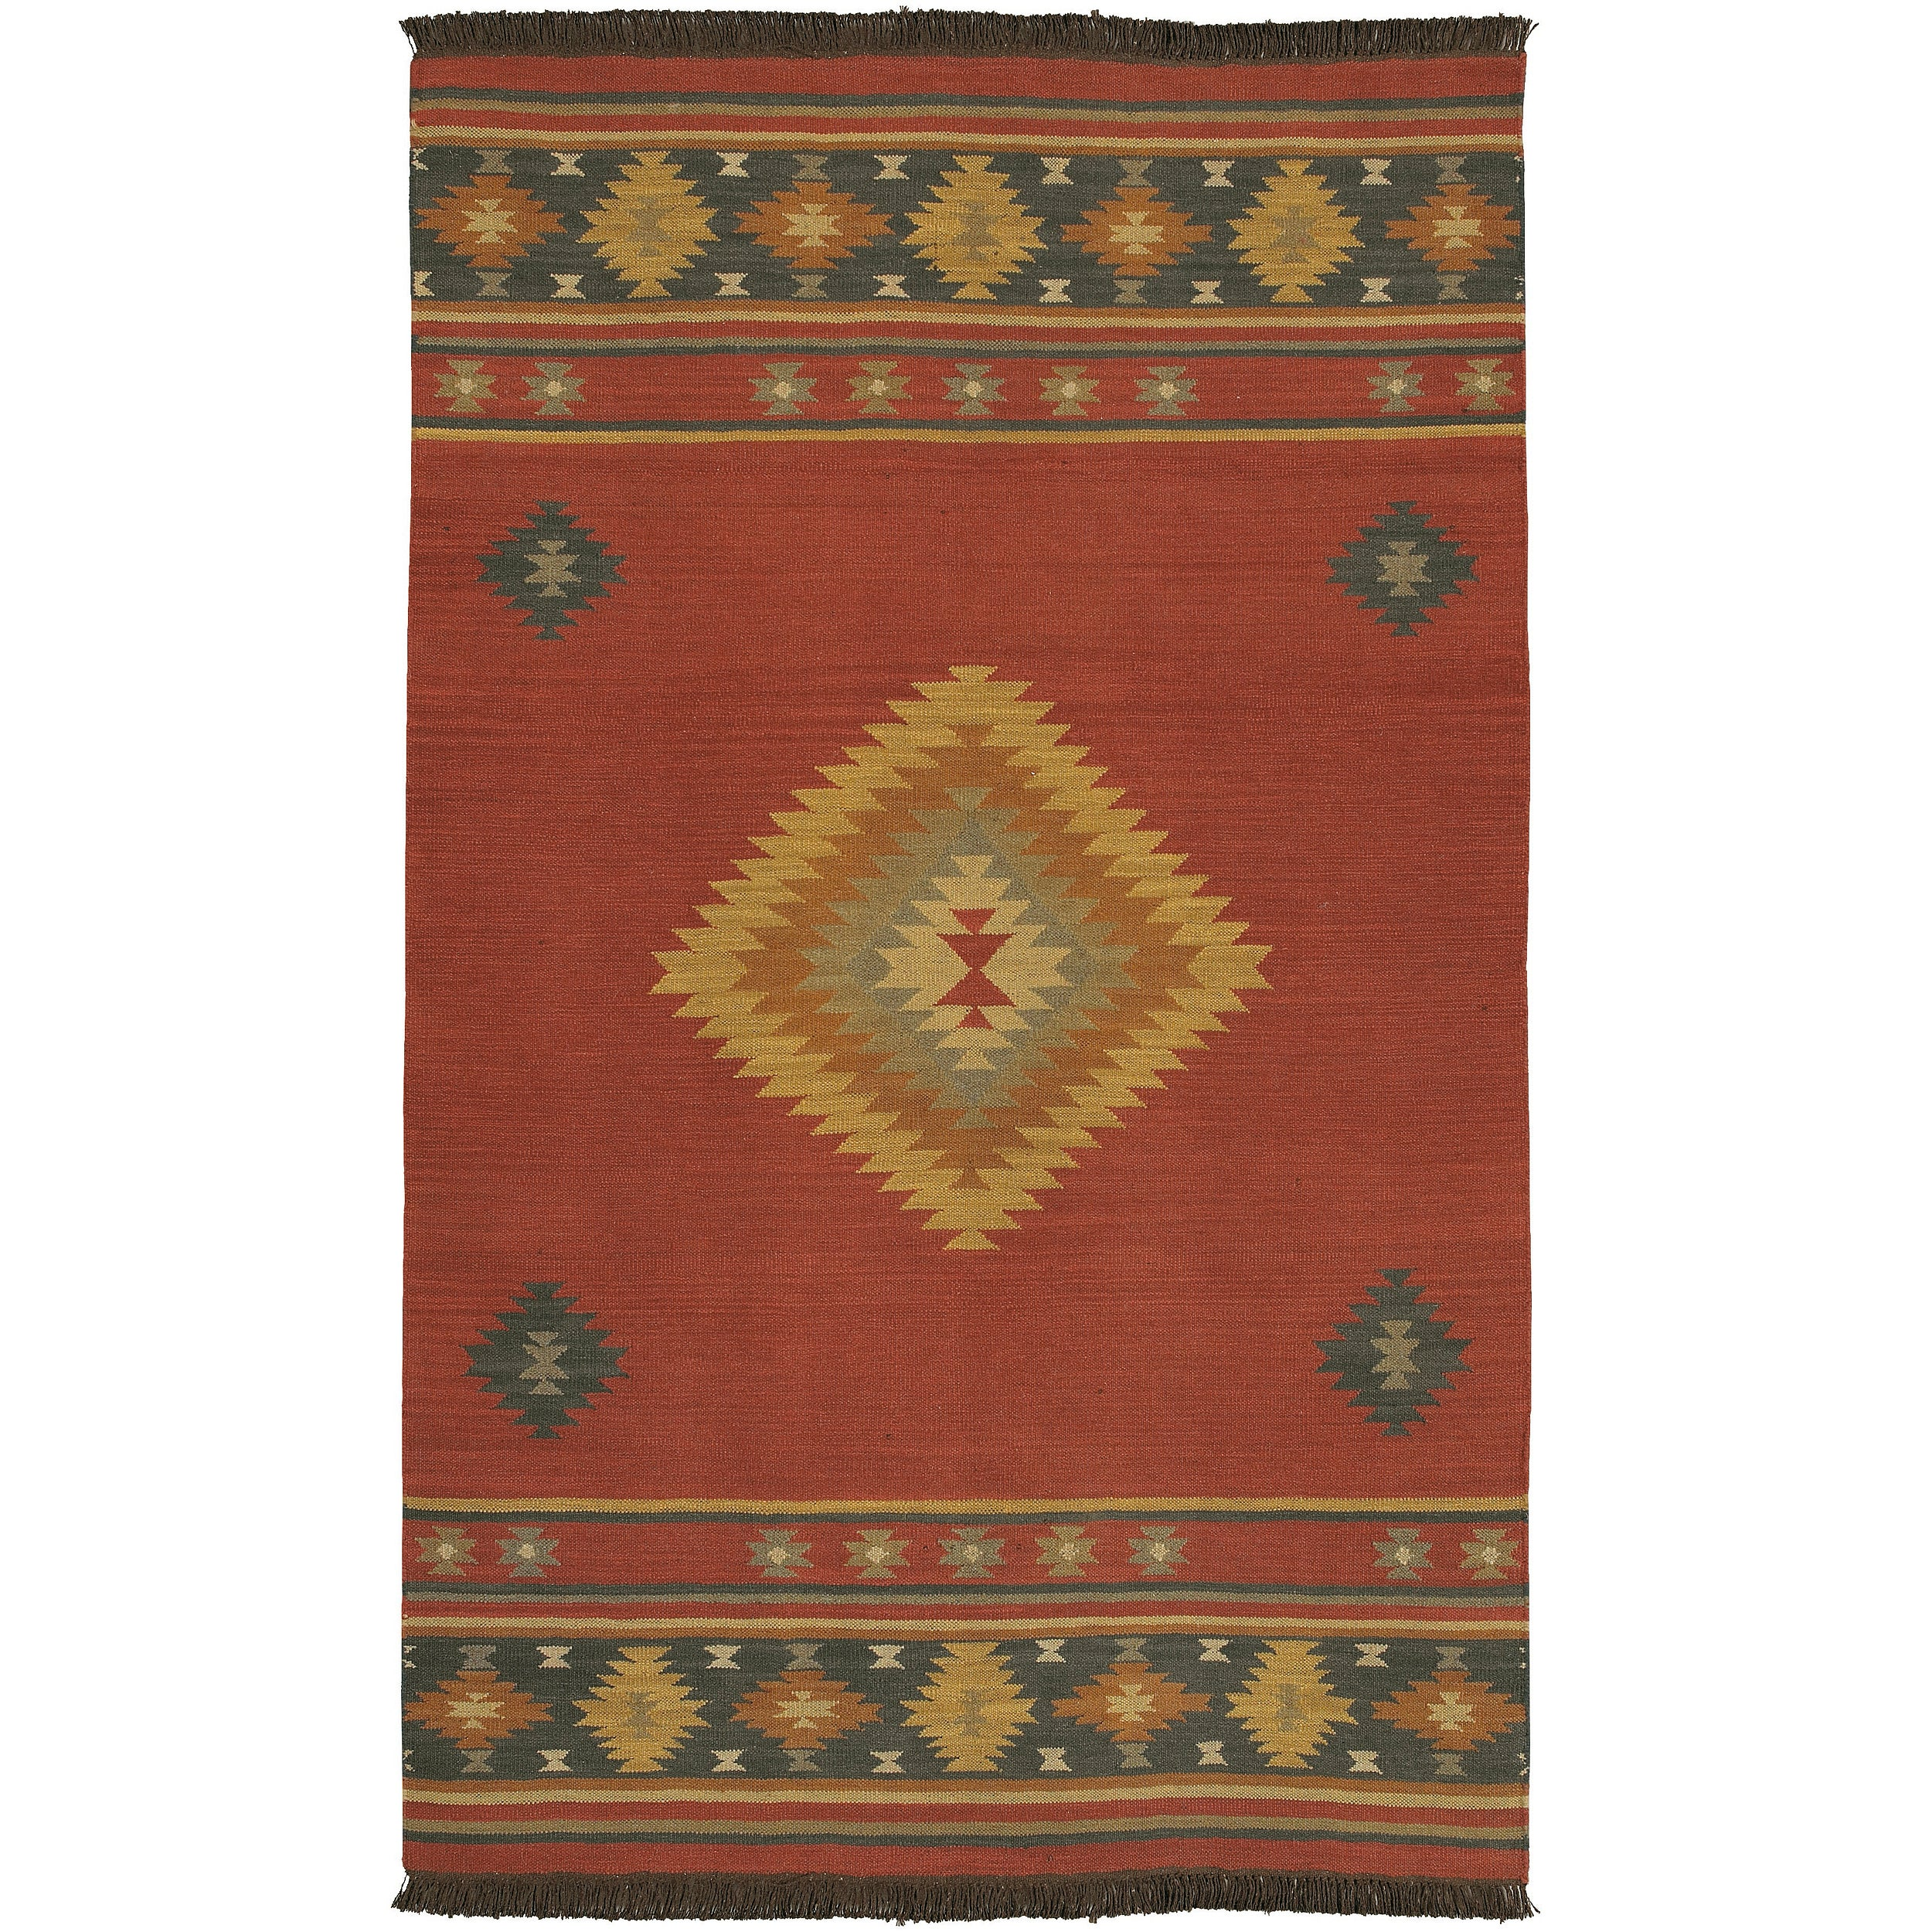 Shop For Fernie Hand Woven Southwestern Wool Area Rug Get Free Delivery On Everything At Overstock Your Online Home Decor Store Get 5 In Rewards With Club O 6578755